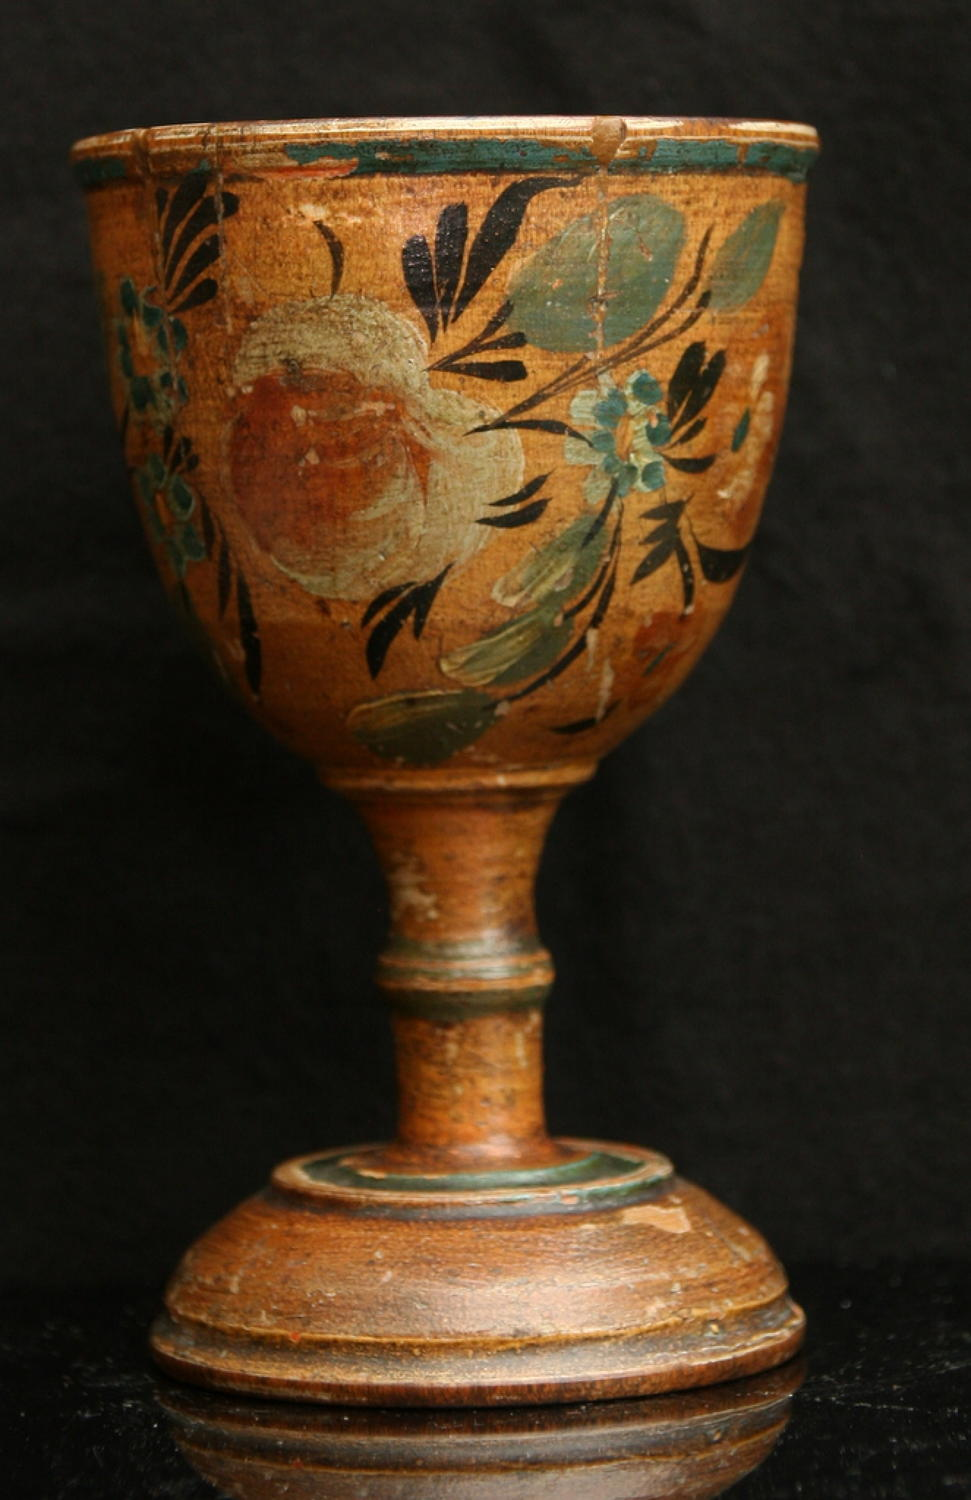 Painted Treen Goblet 19th century